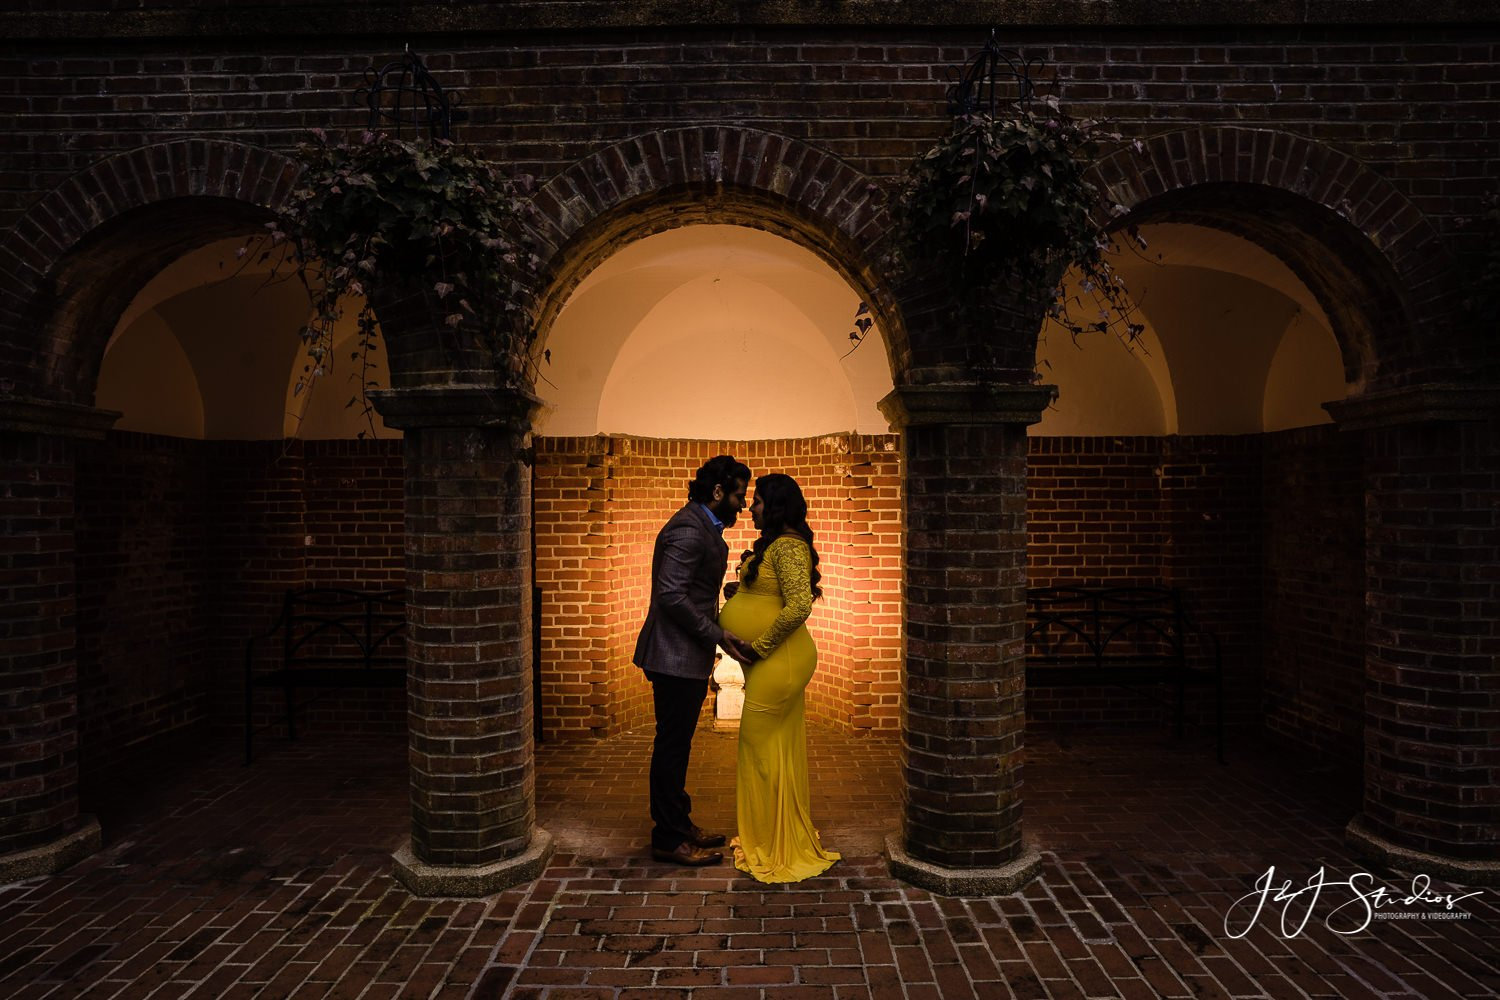 longwood gardens brick maternity photo silhouette